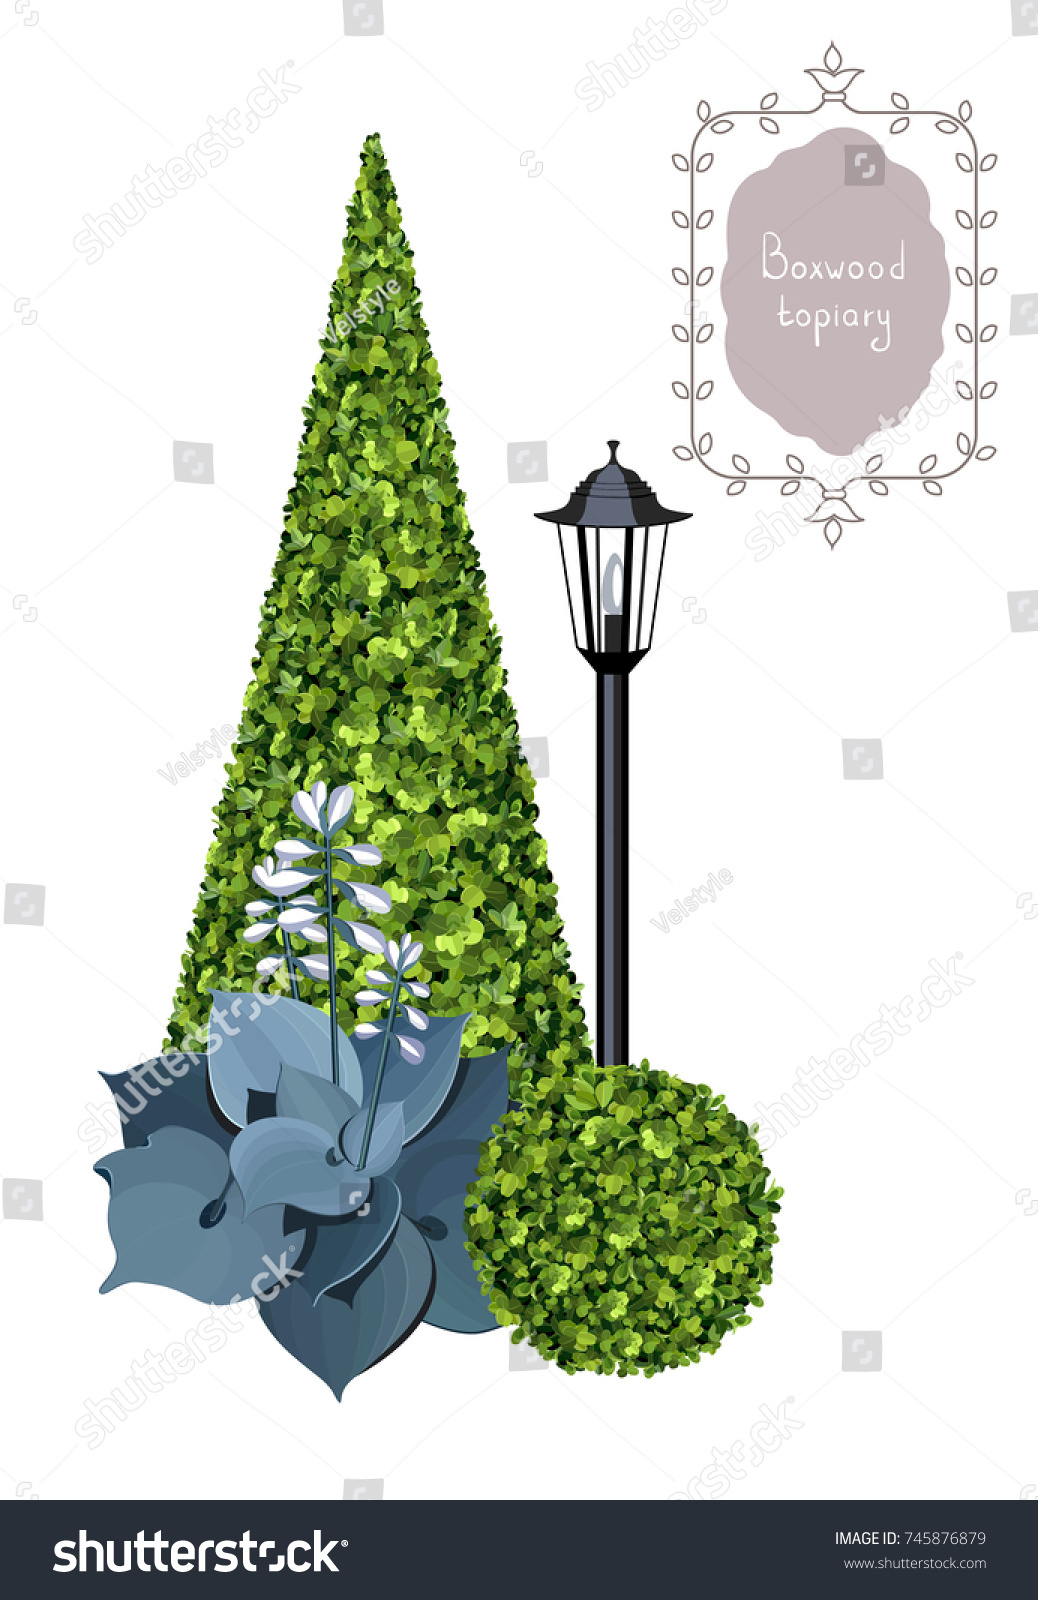 Boxwood Topiary Streetlight Hosta Plant Leaves Stock Vector ... on english garden landscape design ideas, camellia garden, english rose garden, english lavender garden, pink and white landscape garden, hydrangea garden, carnations garden, english laurel garden, magnolia garden, english heather garden, flower border around vegetable garden, iris garden, english ivy garden, lilac garden, gardenia garden,